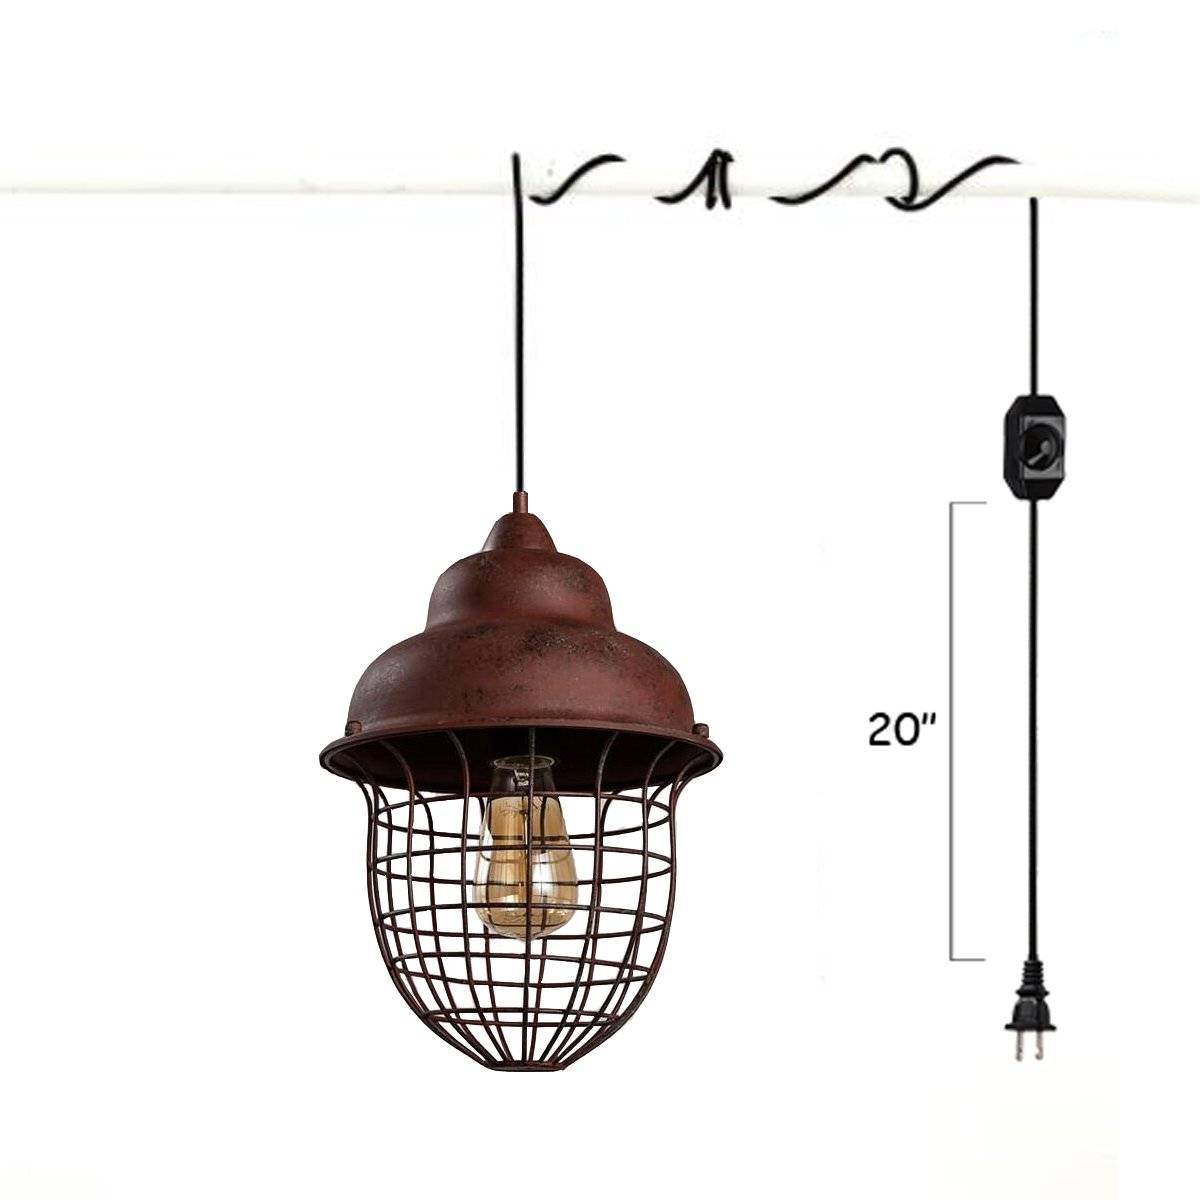 Pendant light kit Large Ceiling Rose Pendant Kiven Vintage Rusty Pendant Light Kit Cord With Dimming Switch And Ul Plug E26e27 Industrial Light Socket Lamp Holder 15ft Black Cable Plug In Hanging Amazoncom Kiven Vintage Rusty Pendant Light Kit Cord With Dimming Switch And